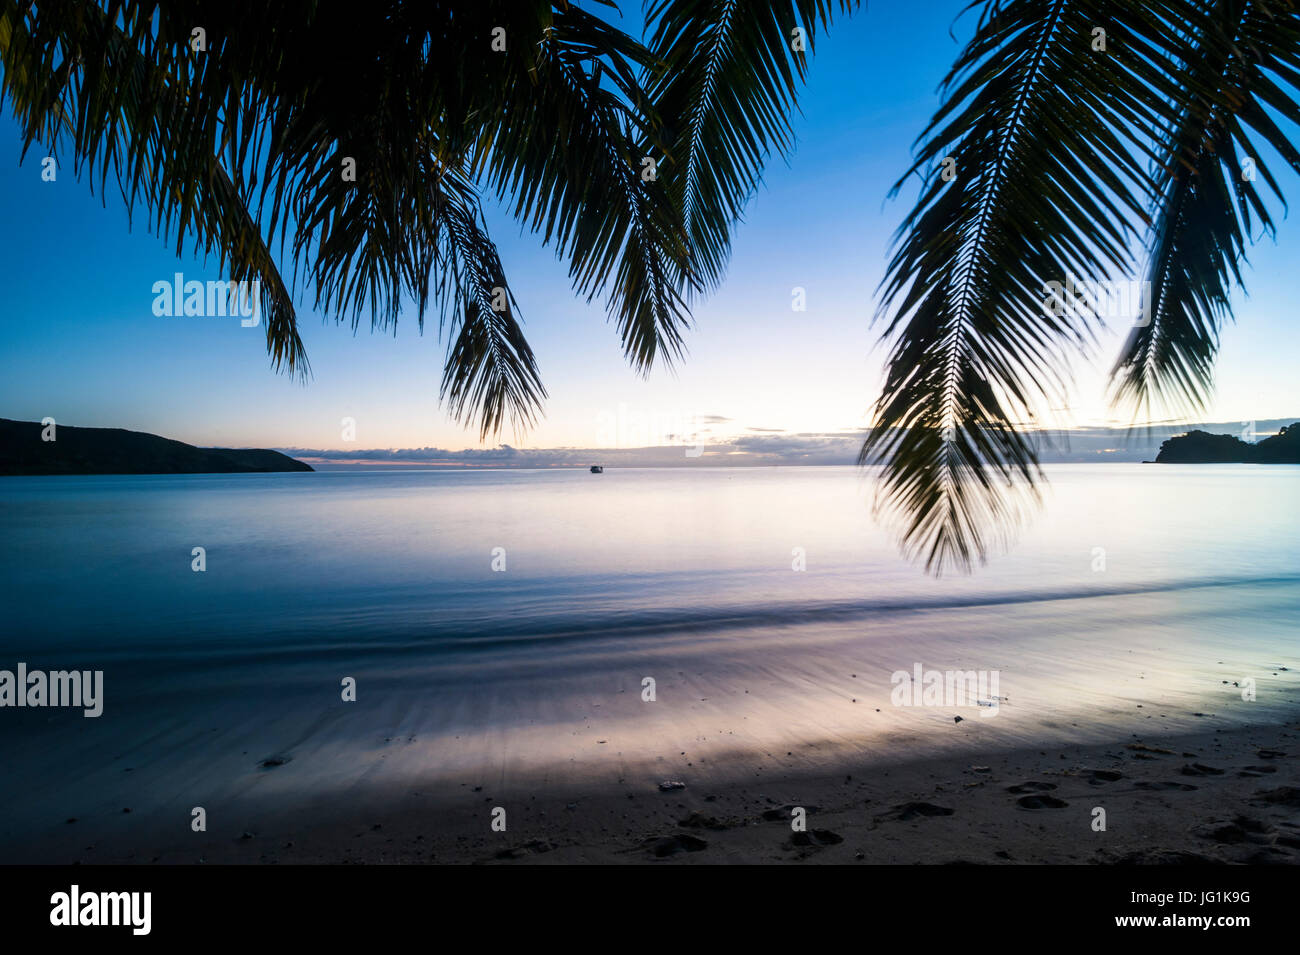 Sunset over the beach of the Korovou Eco-Tour Resort, Naviti, Yasawas, Fiji, South Pacific - Stock Image